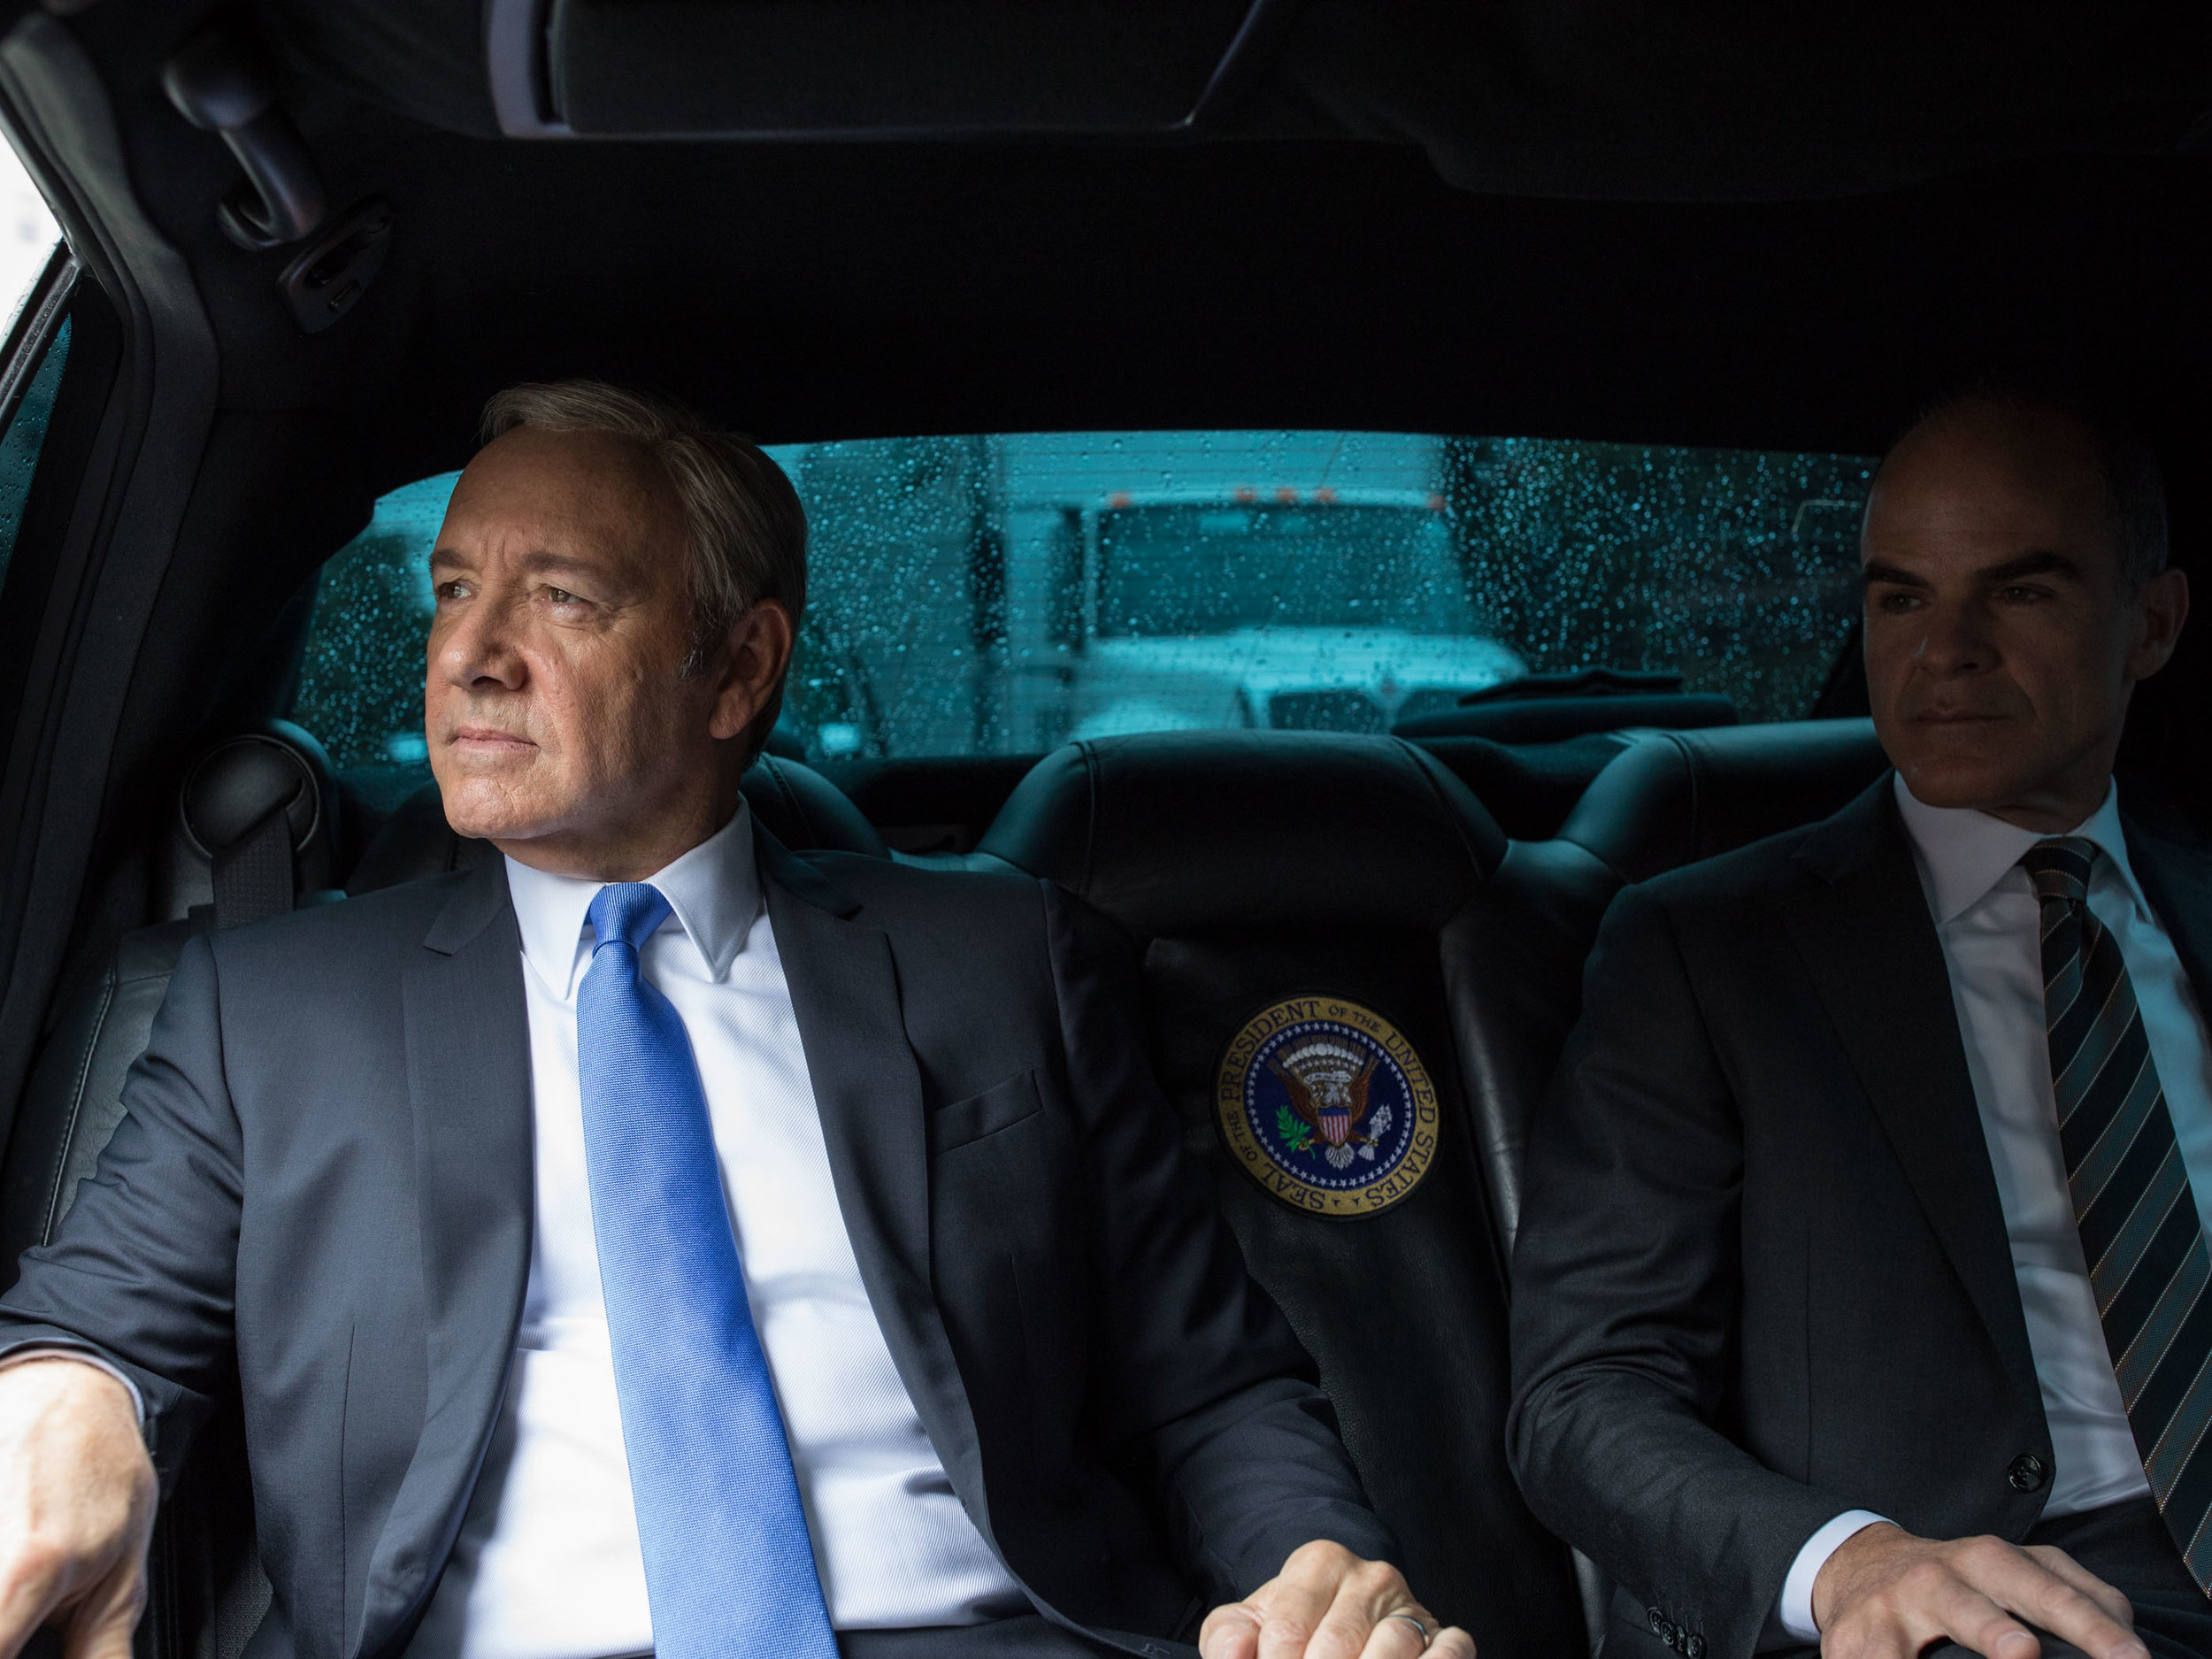 House of Cards_S5_A Day in Life of Frank Underwood_05.jpg